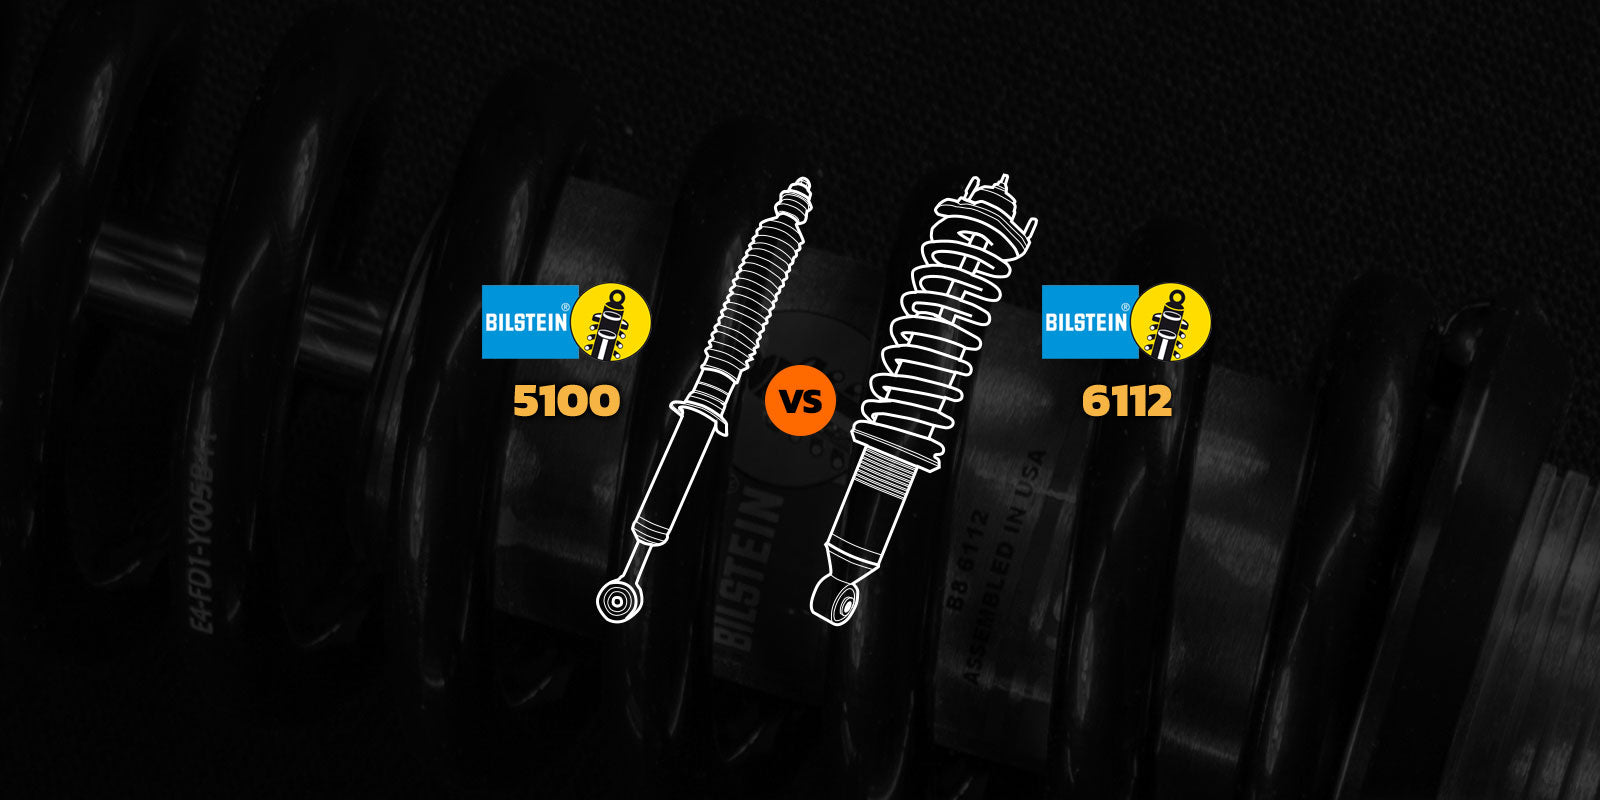 Bilstein 6112 vs. 5100 Shocks, what are the major differences?